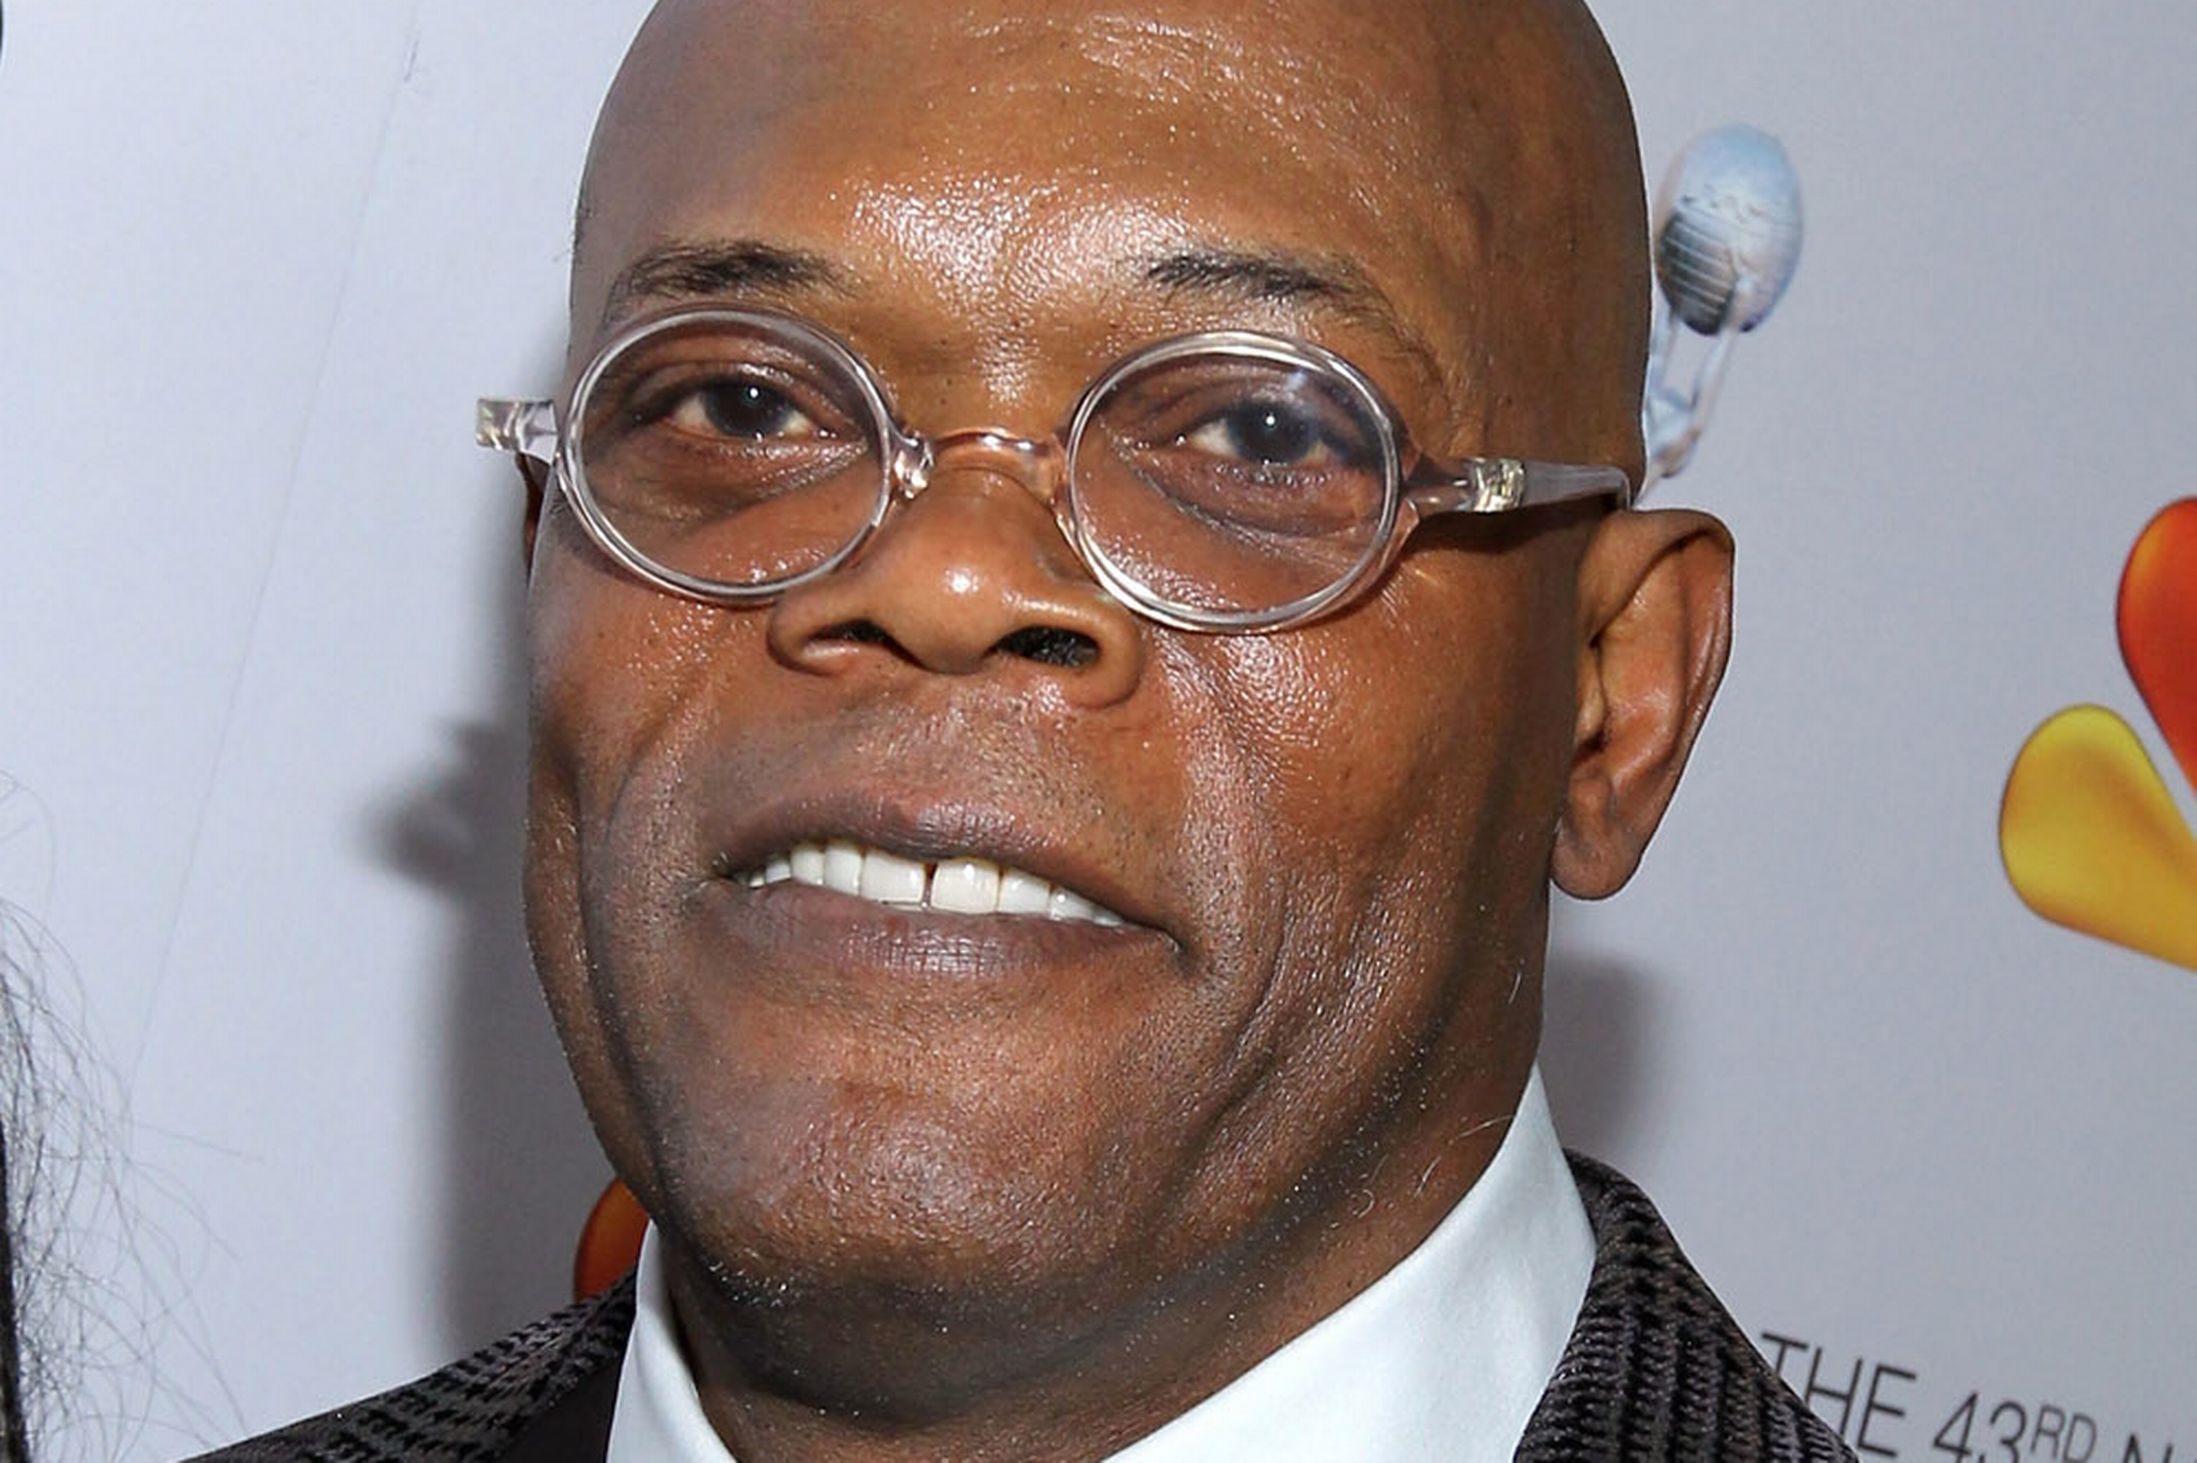 http://wallpapersdsc.net/wp-content/uploads/2016/01/Samuel-L.-Jackson-Images.jpg